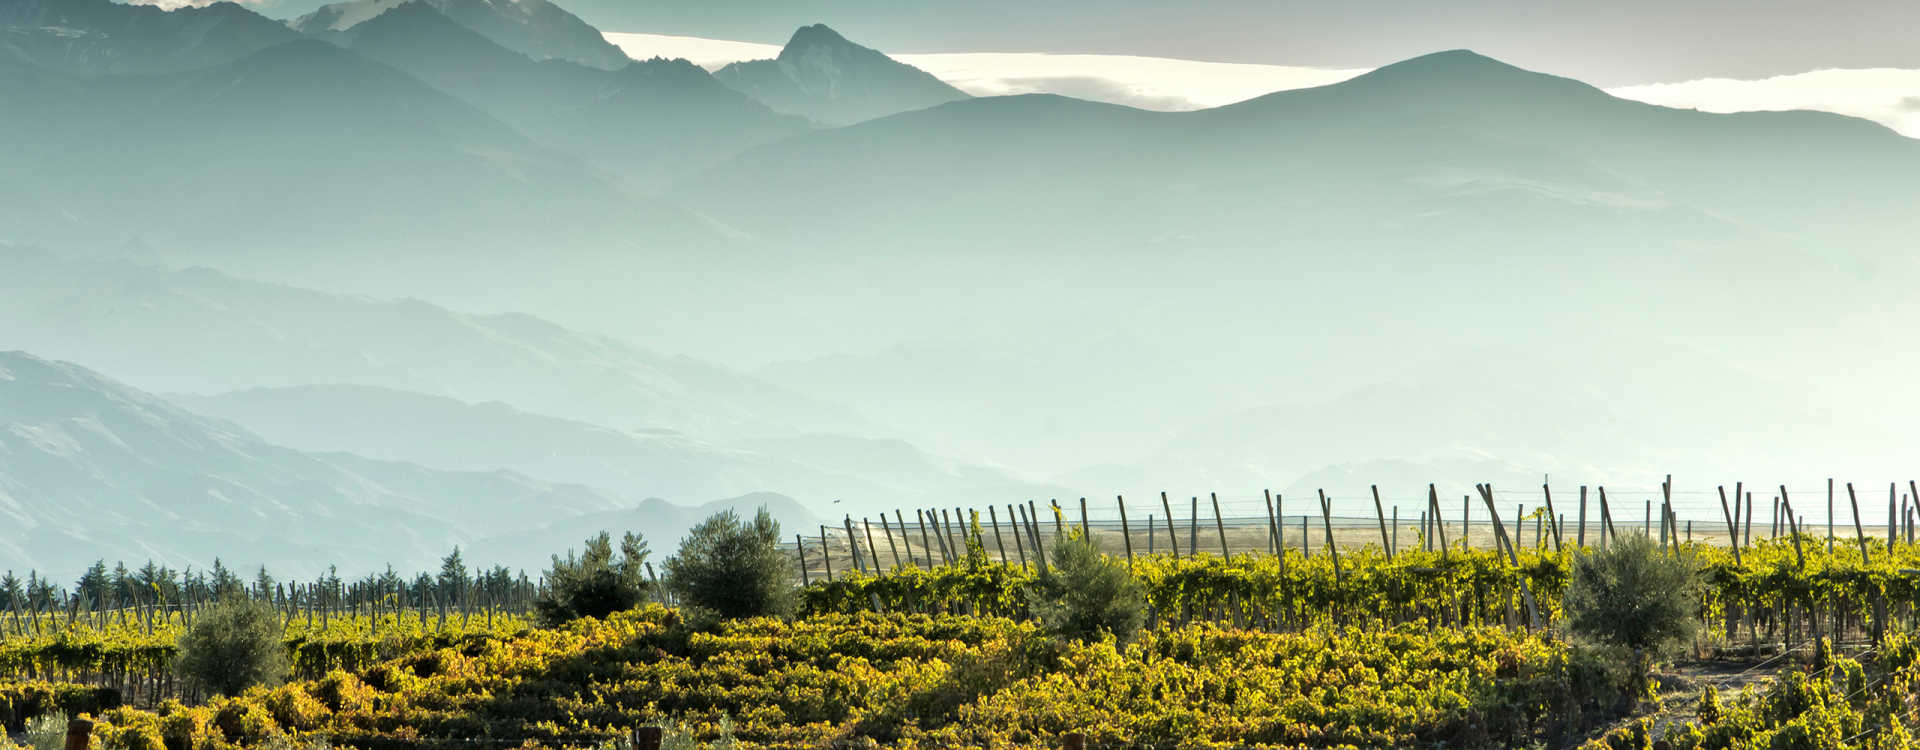 Image for Uco Valley Wine Mendoza, Argentina content section